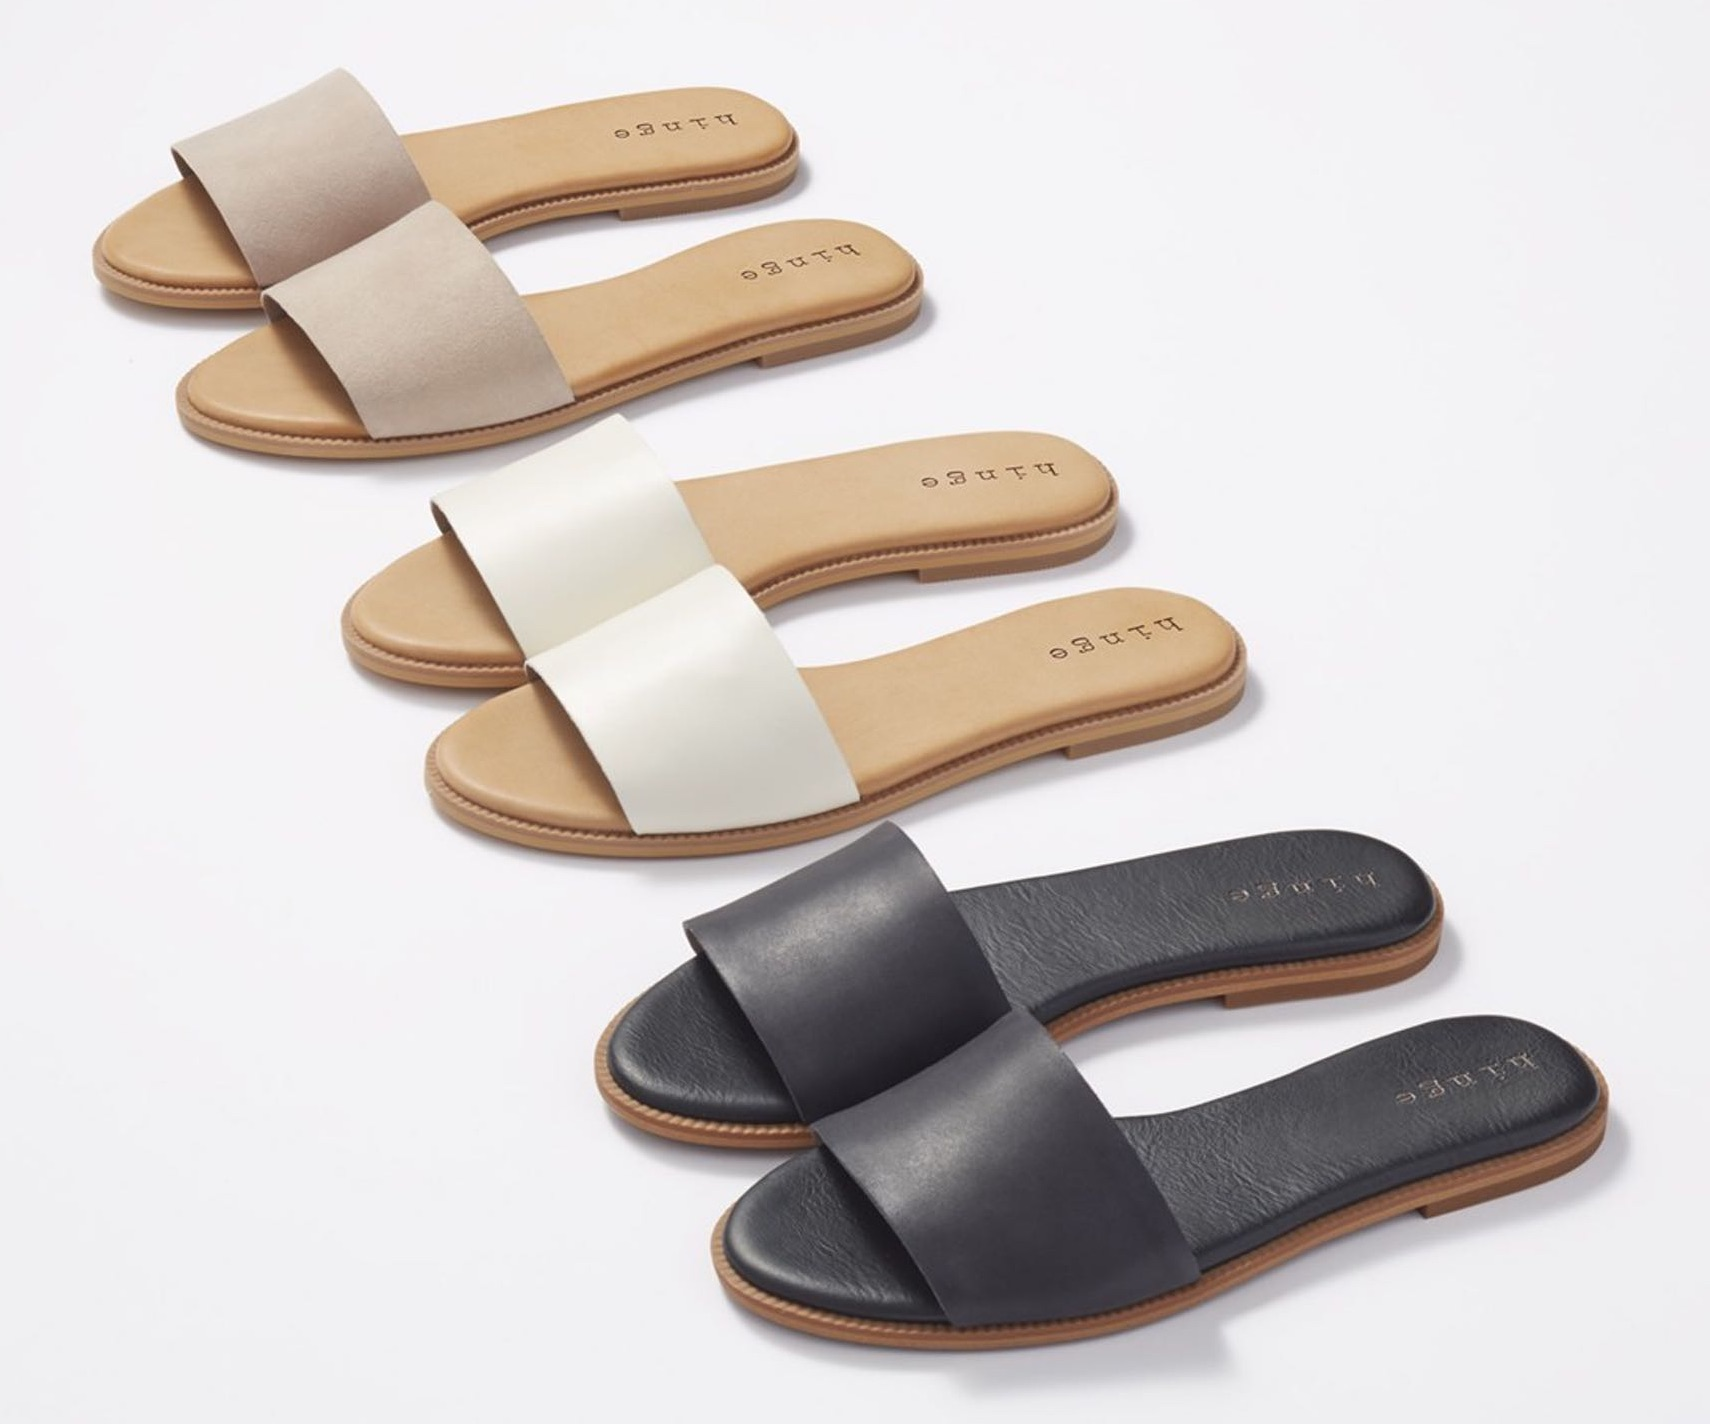 hinge leather slide sandals